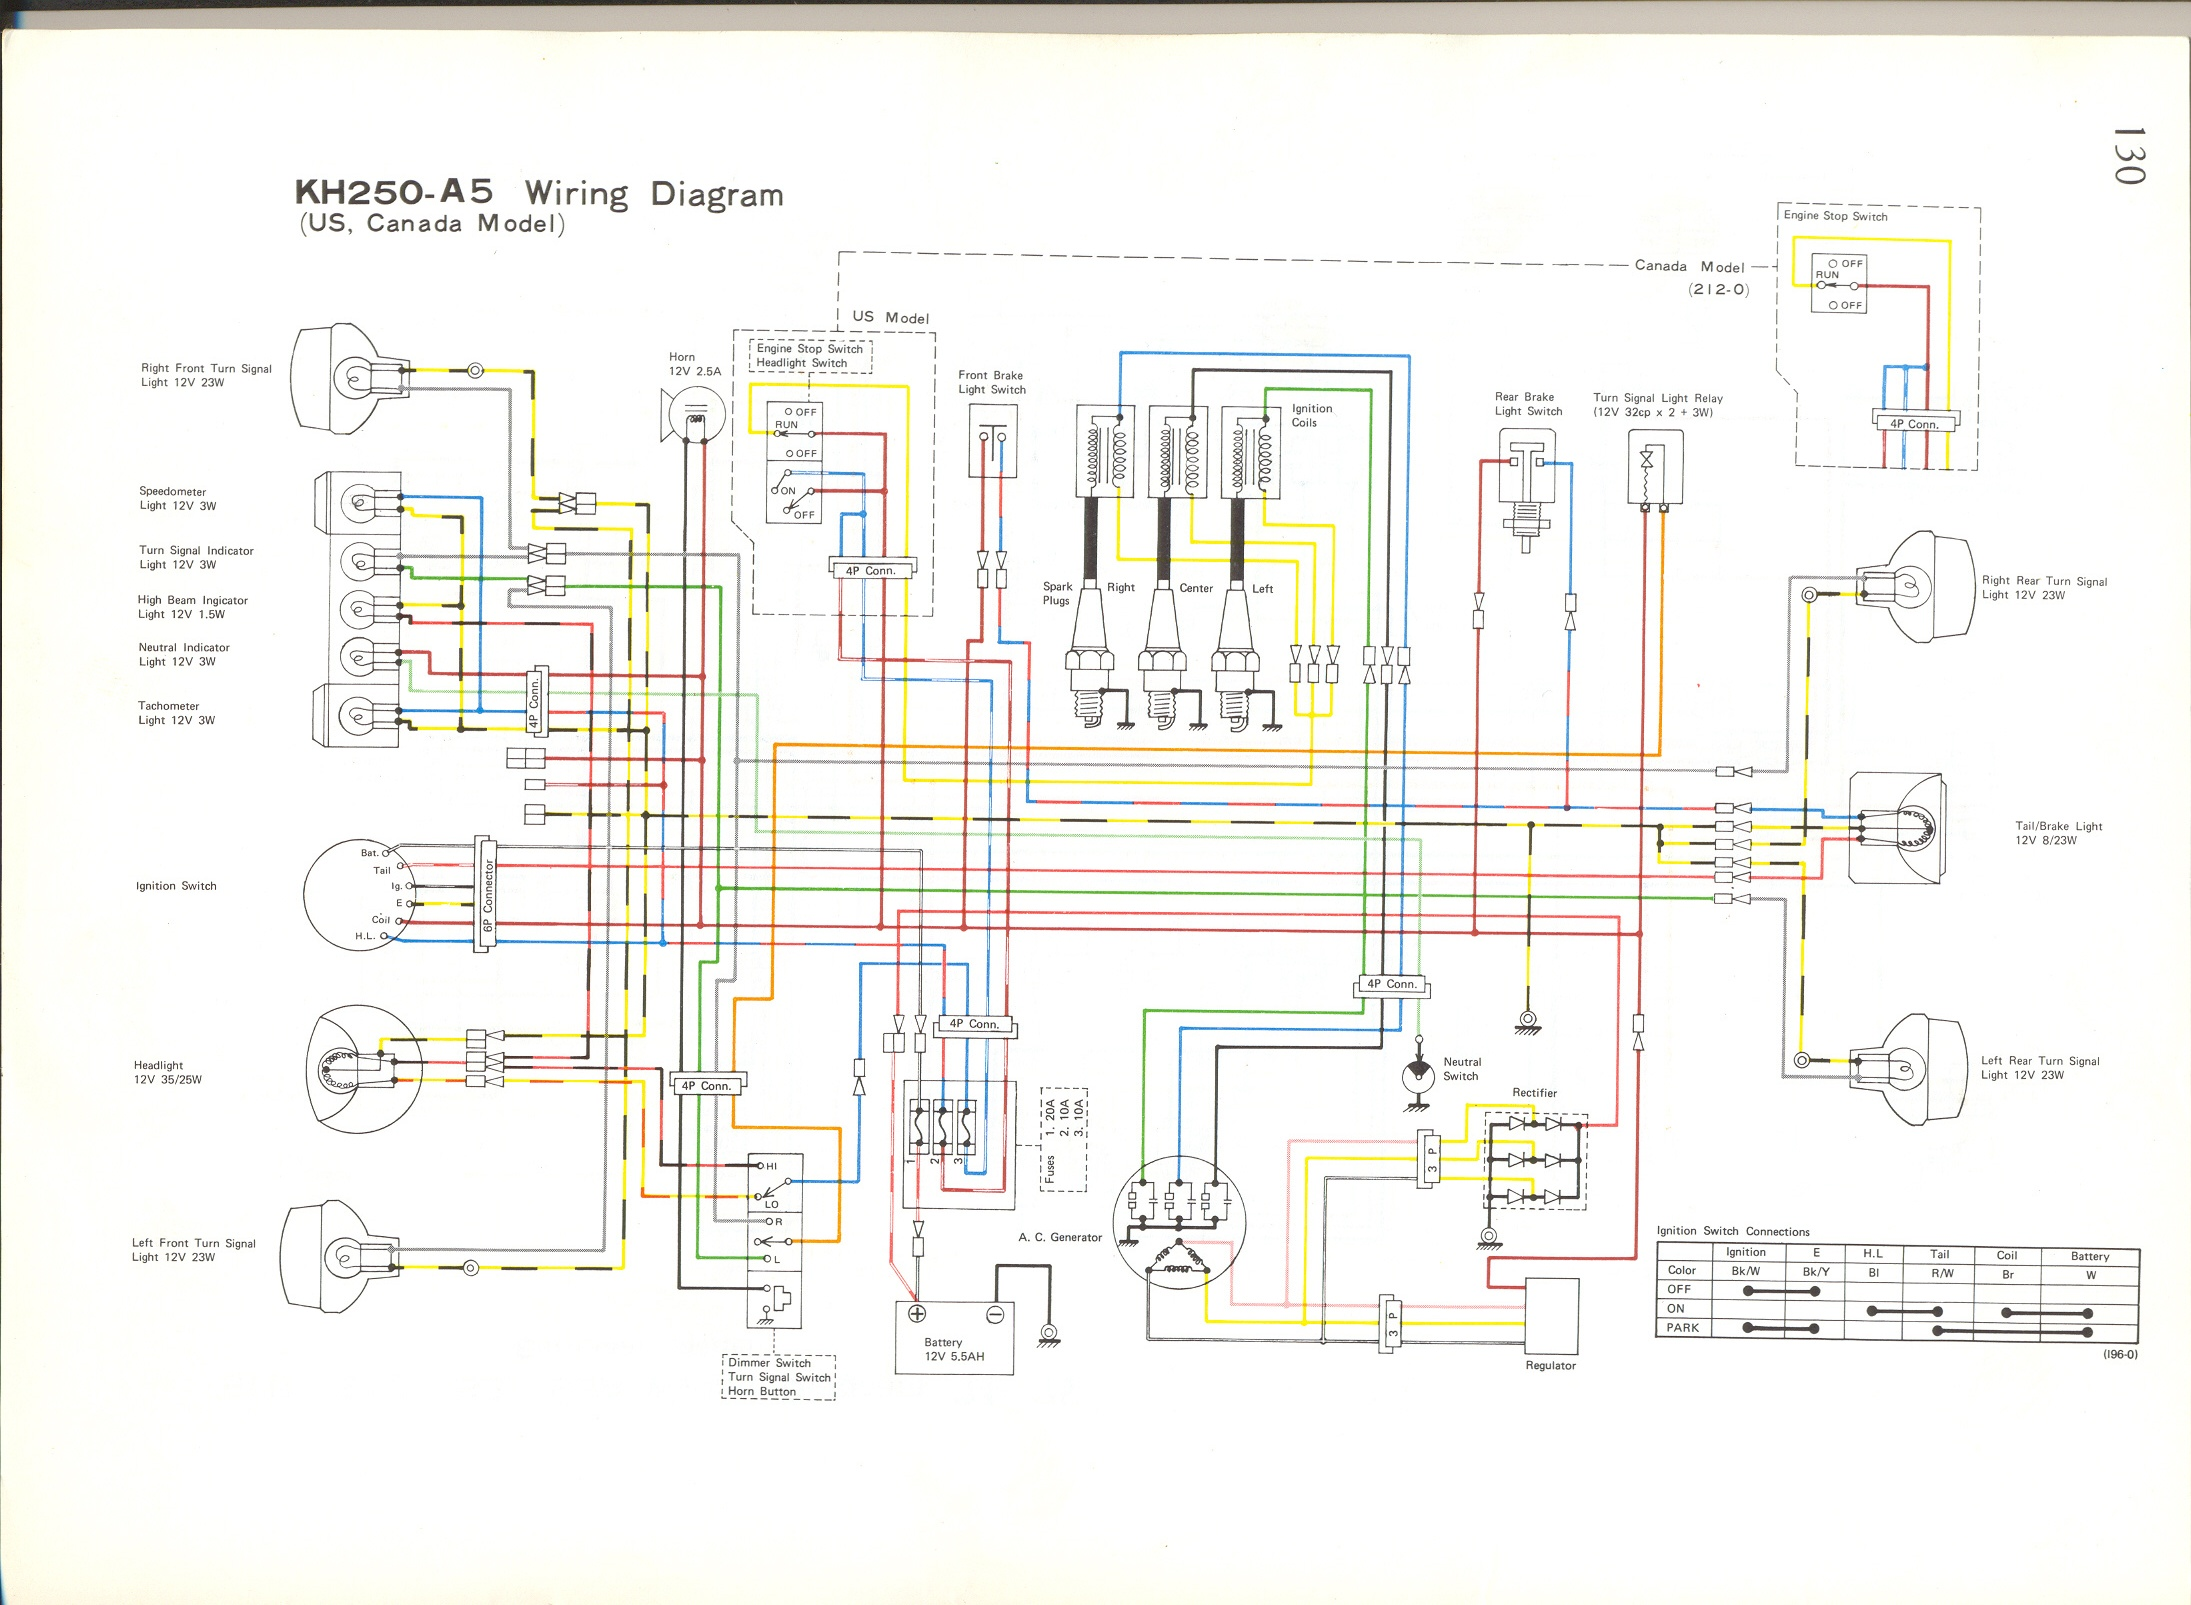 1991 Daihatsu Hijet Wiring Diagram - Wiring Diagrams on